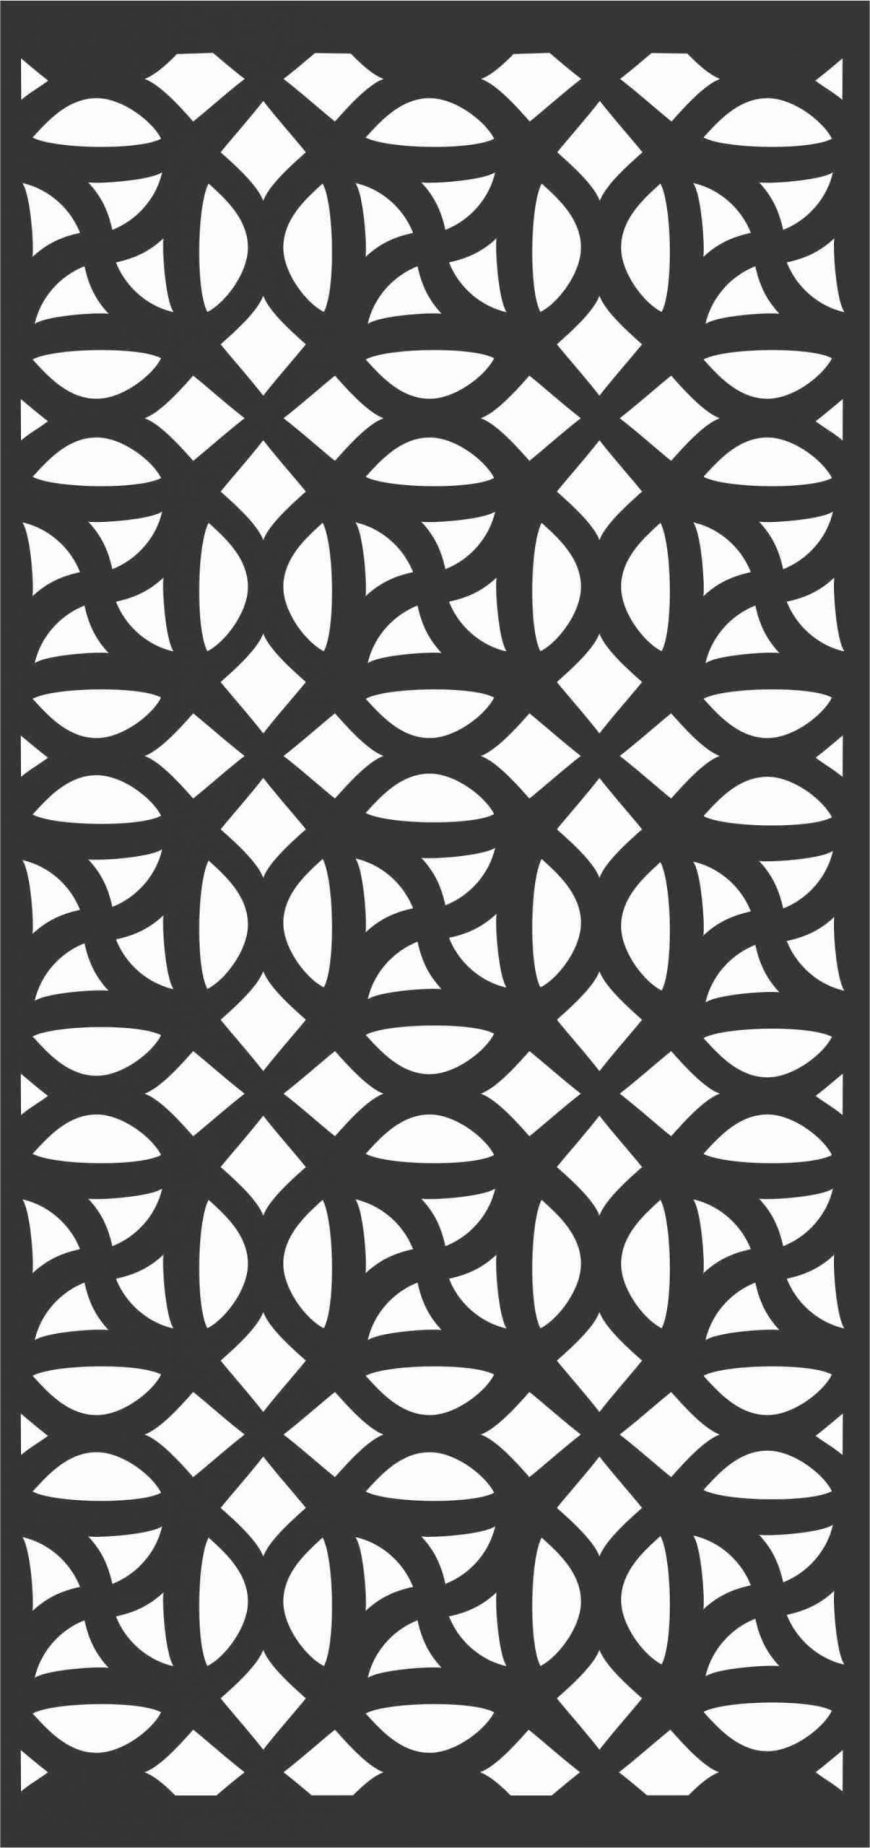 Decorative Screen Patterns For Laser Cutting 192 Free DXF File